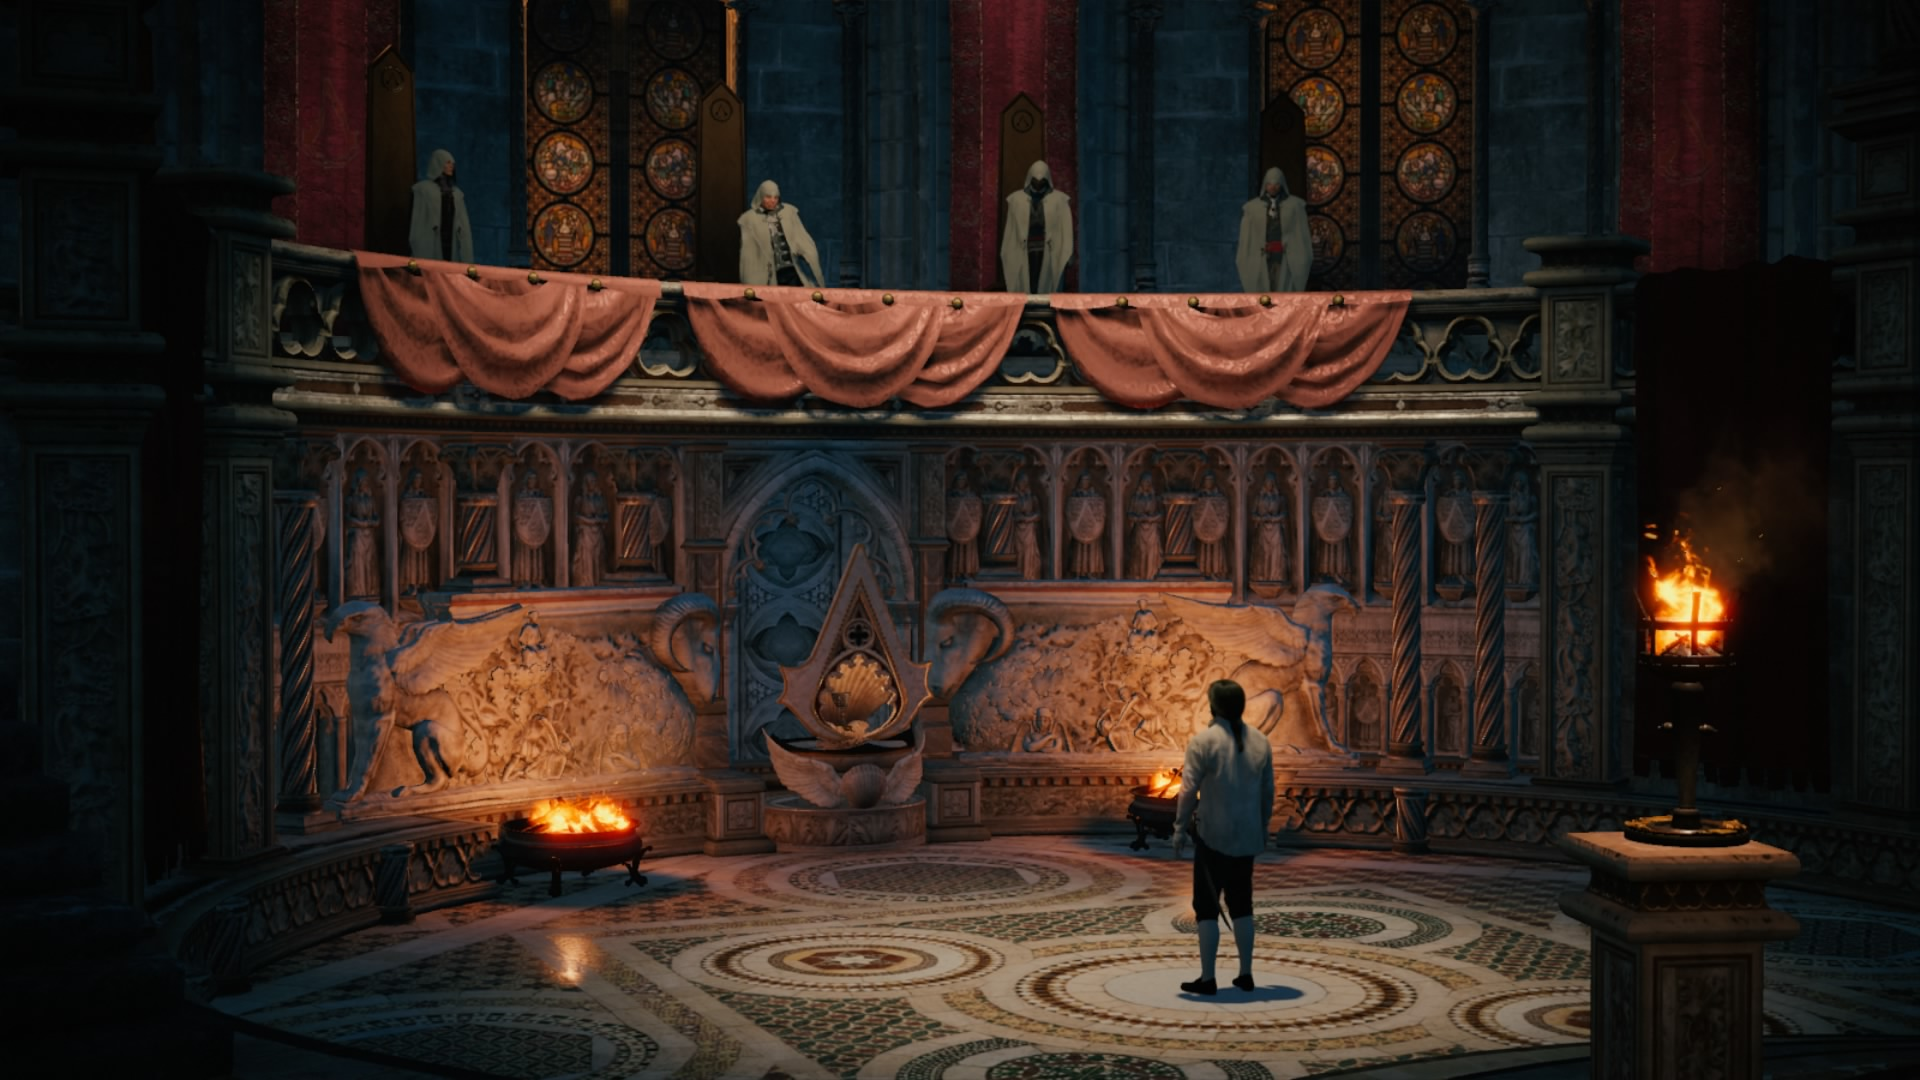 In-game obrázky z Assassin's Creed: Unity 101826